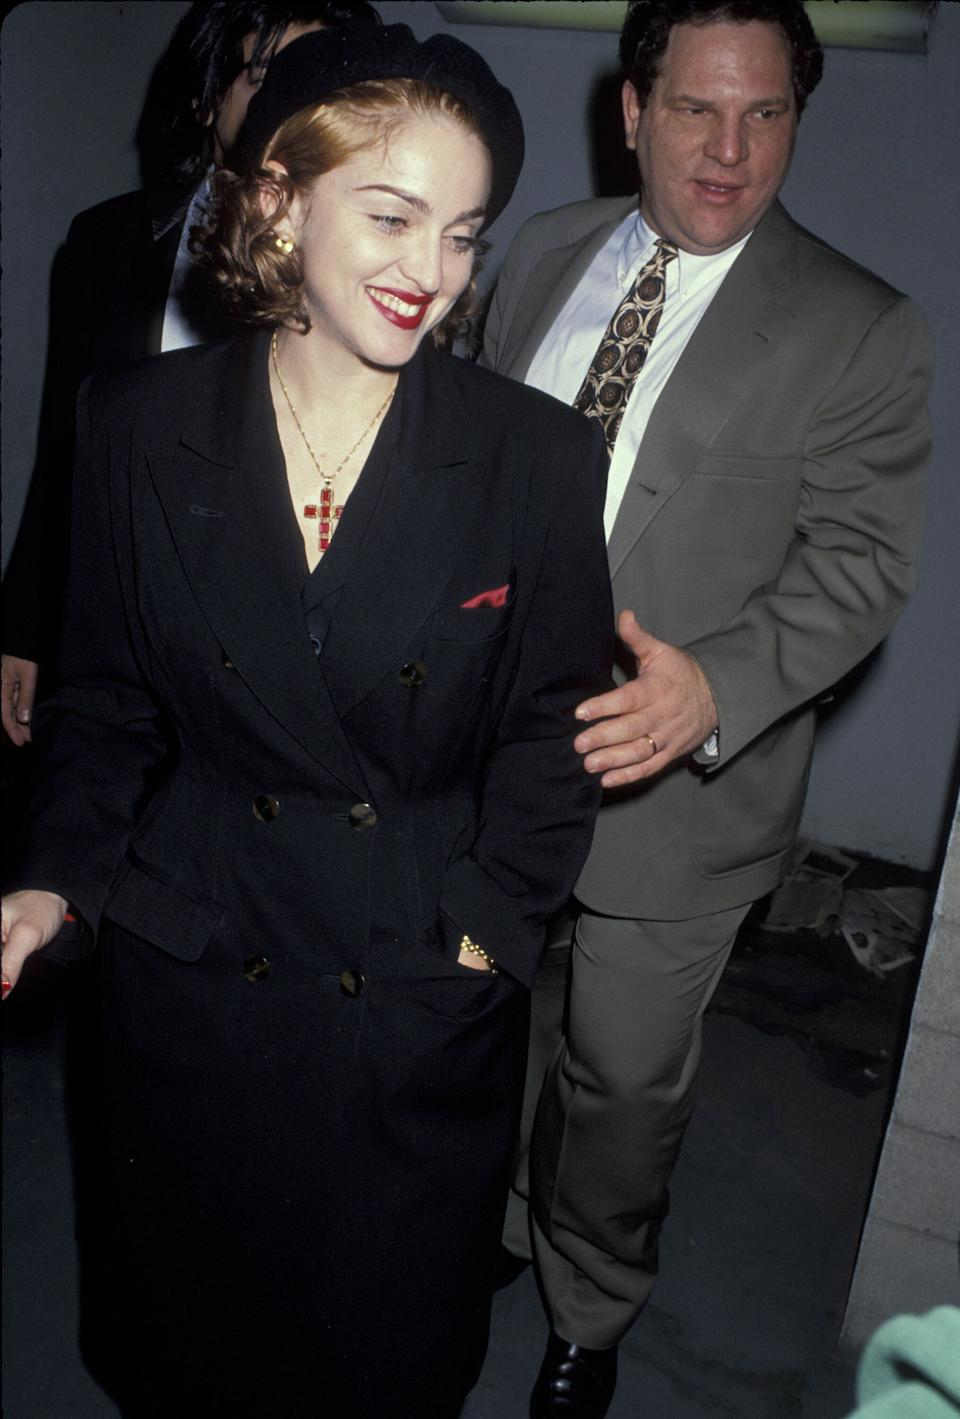 """Madonna at the premiere of """"Hear My Song"""" in 1991, which Harvey Weinstein's Miramax distributed.  (Photo: Jim Smeal/WireImage)"""